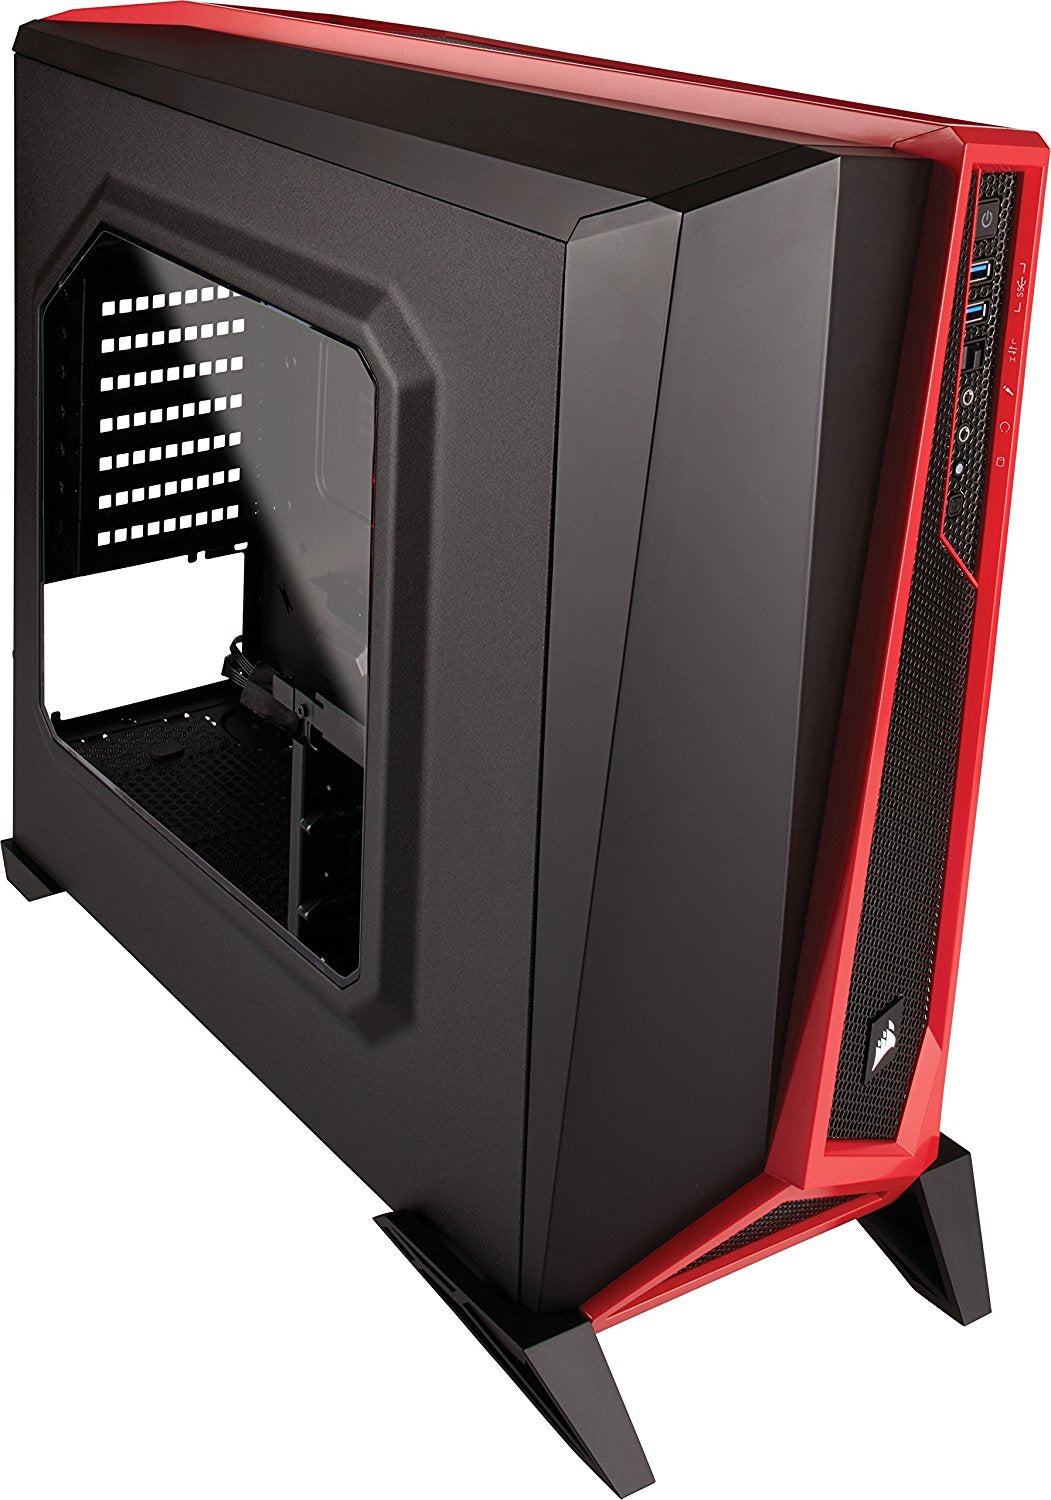 Corsair Carbide SPEC-ALPHA Mid-tower Gaming Case (Black/Red) Support for 240mm Radiator